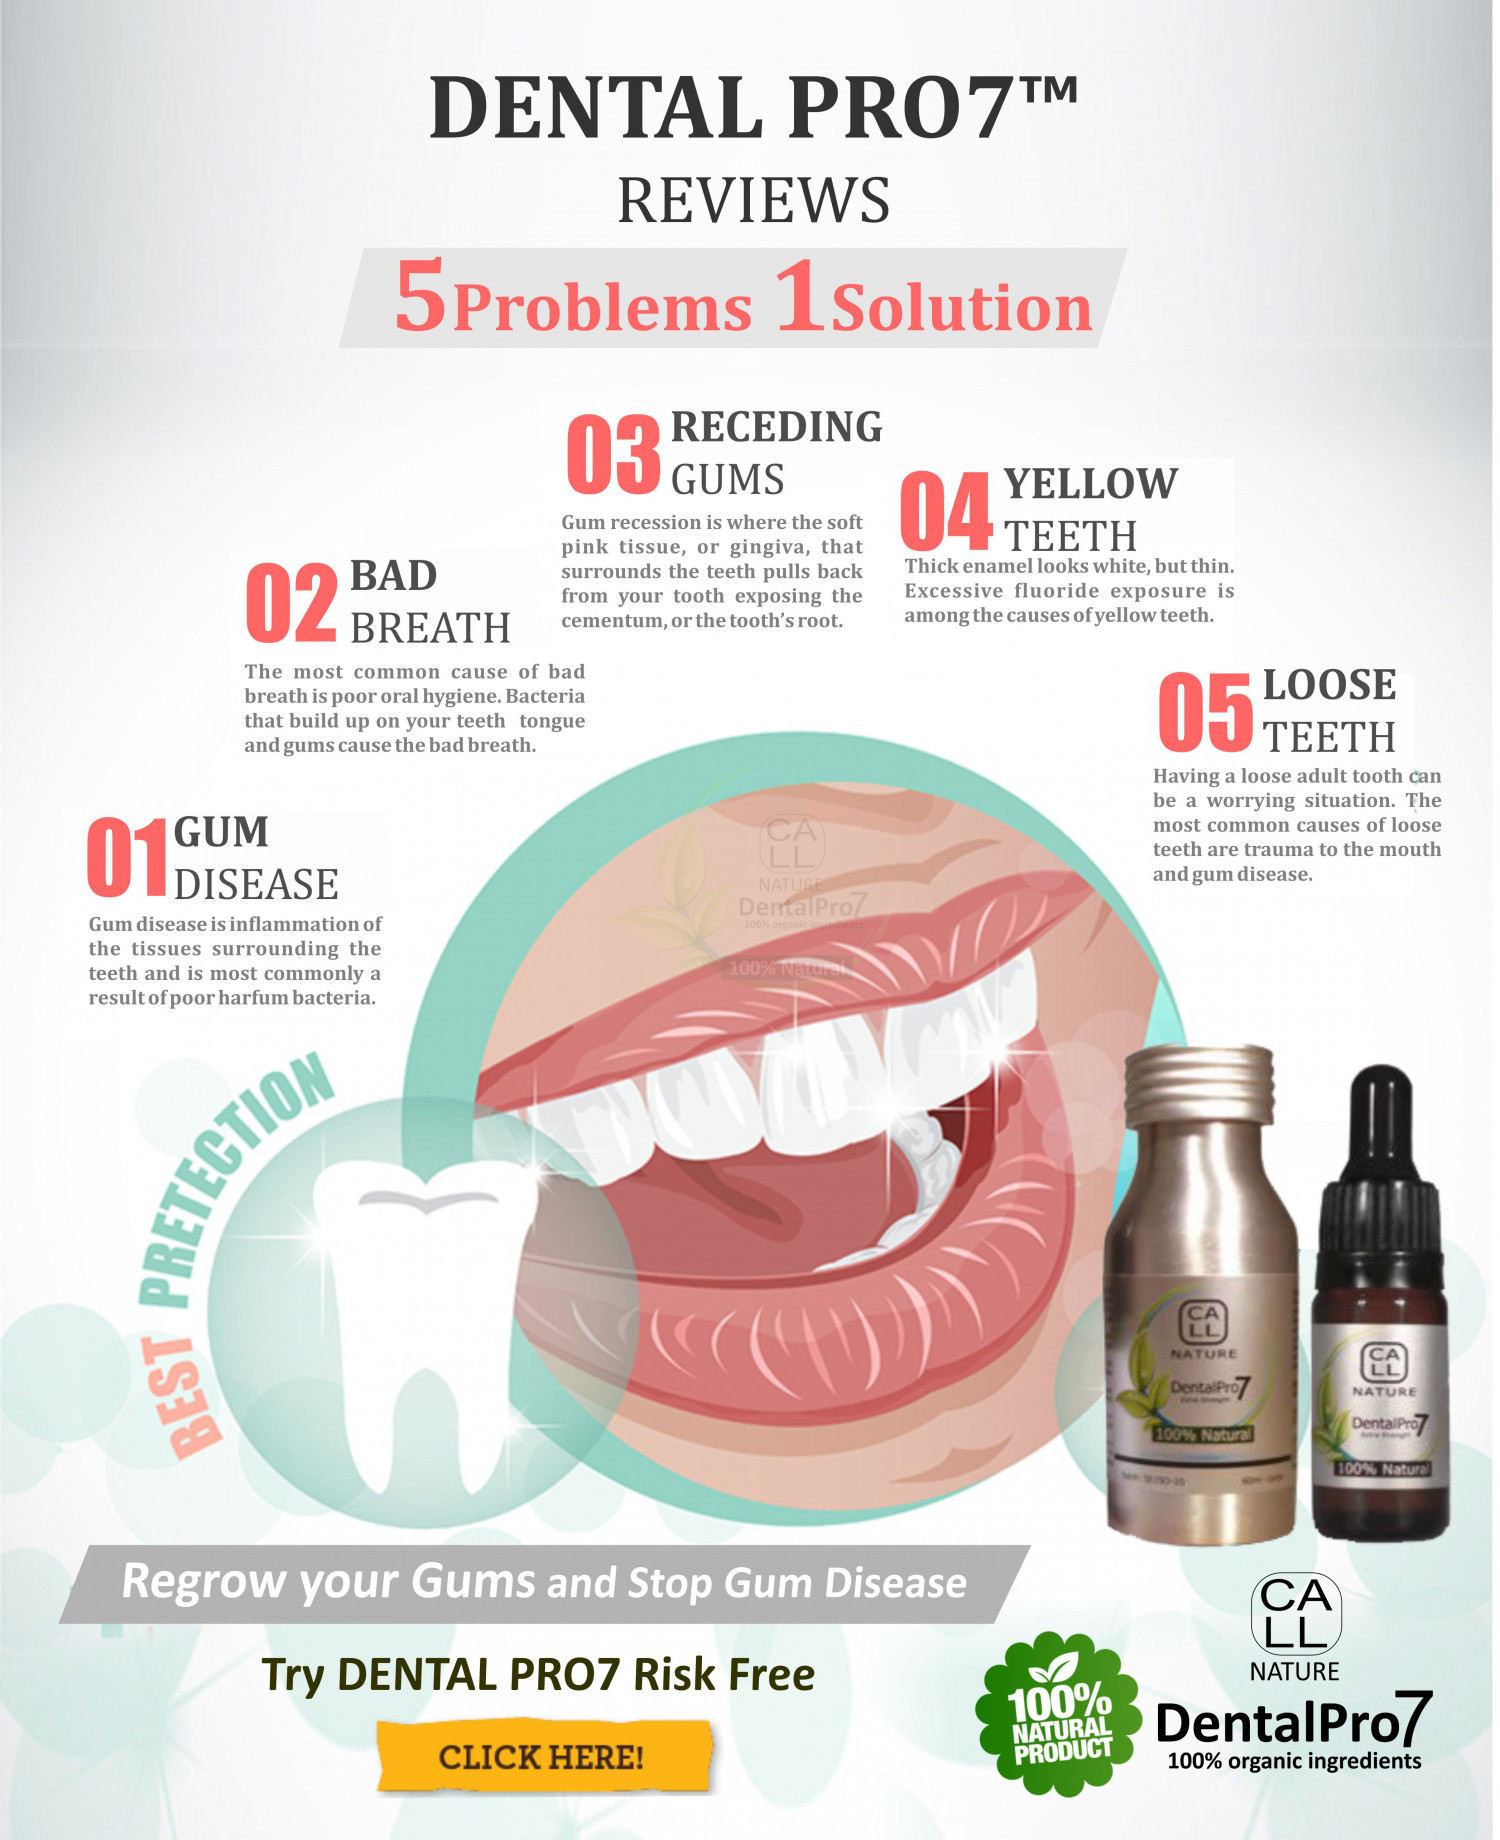 Where Can I Buy Dental Pro 7? Infographic